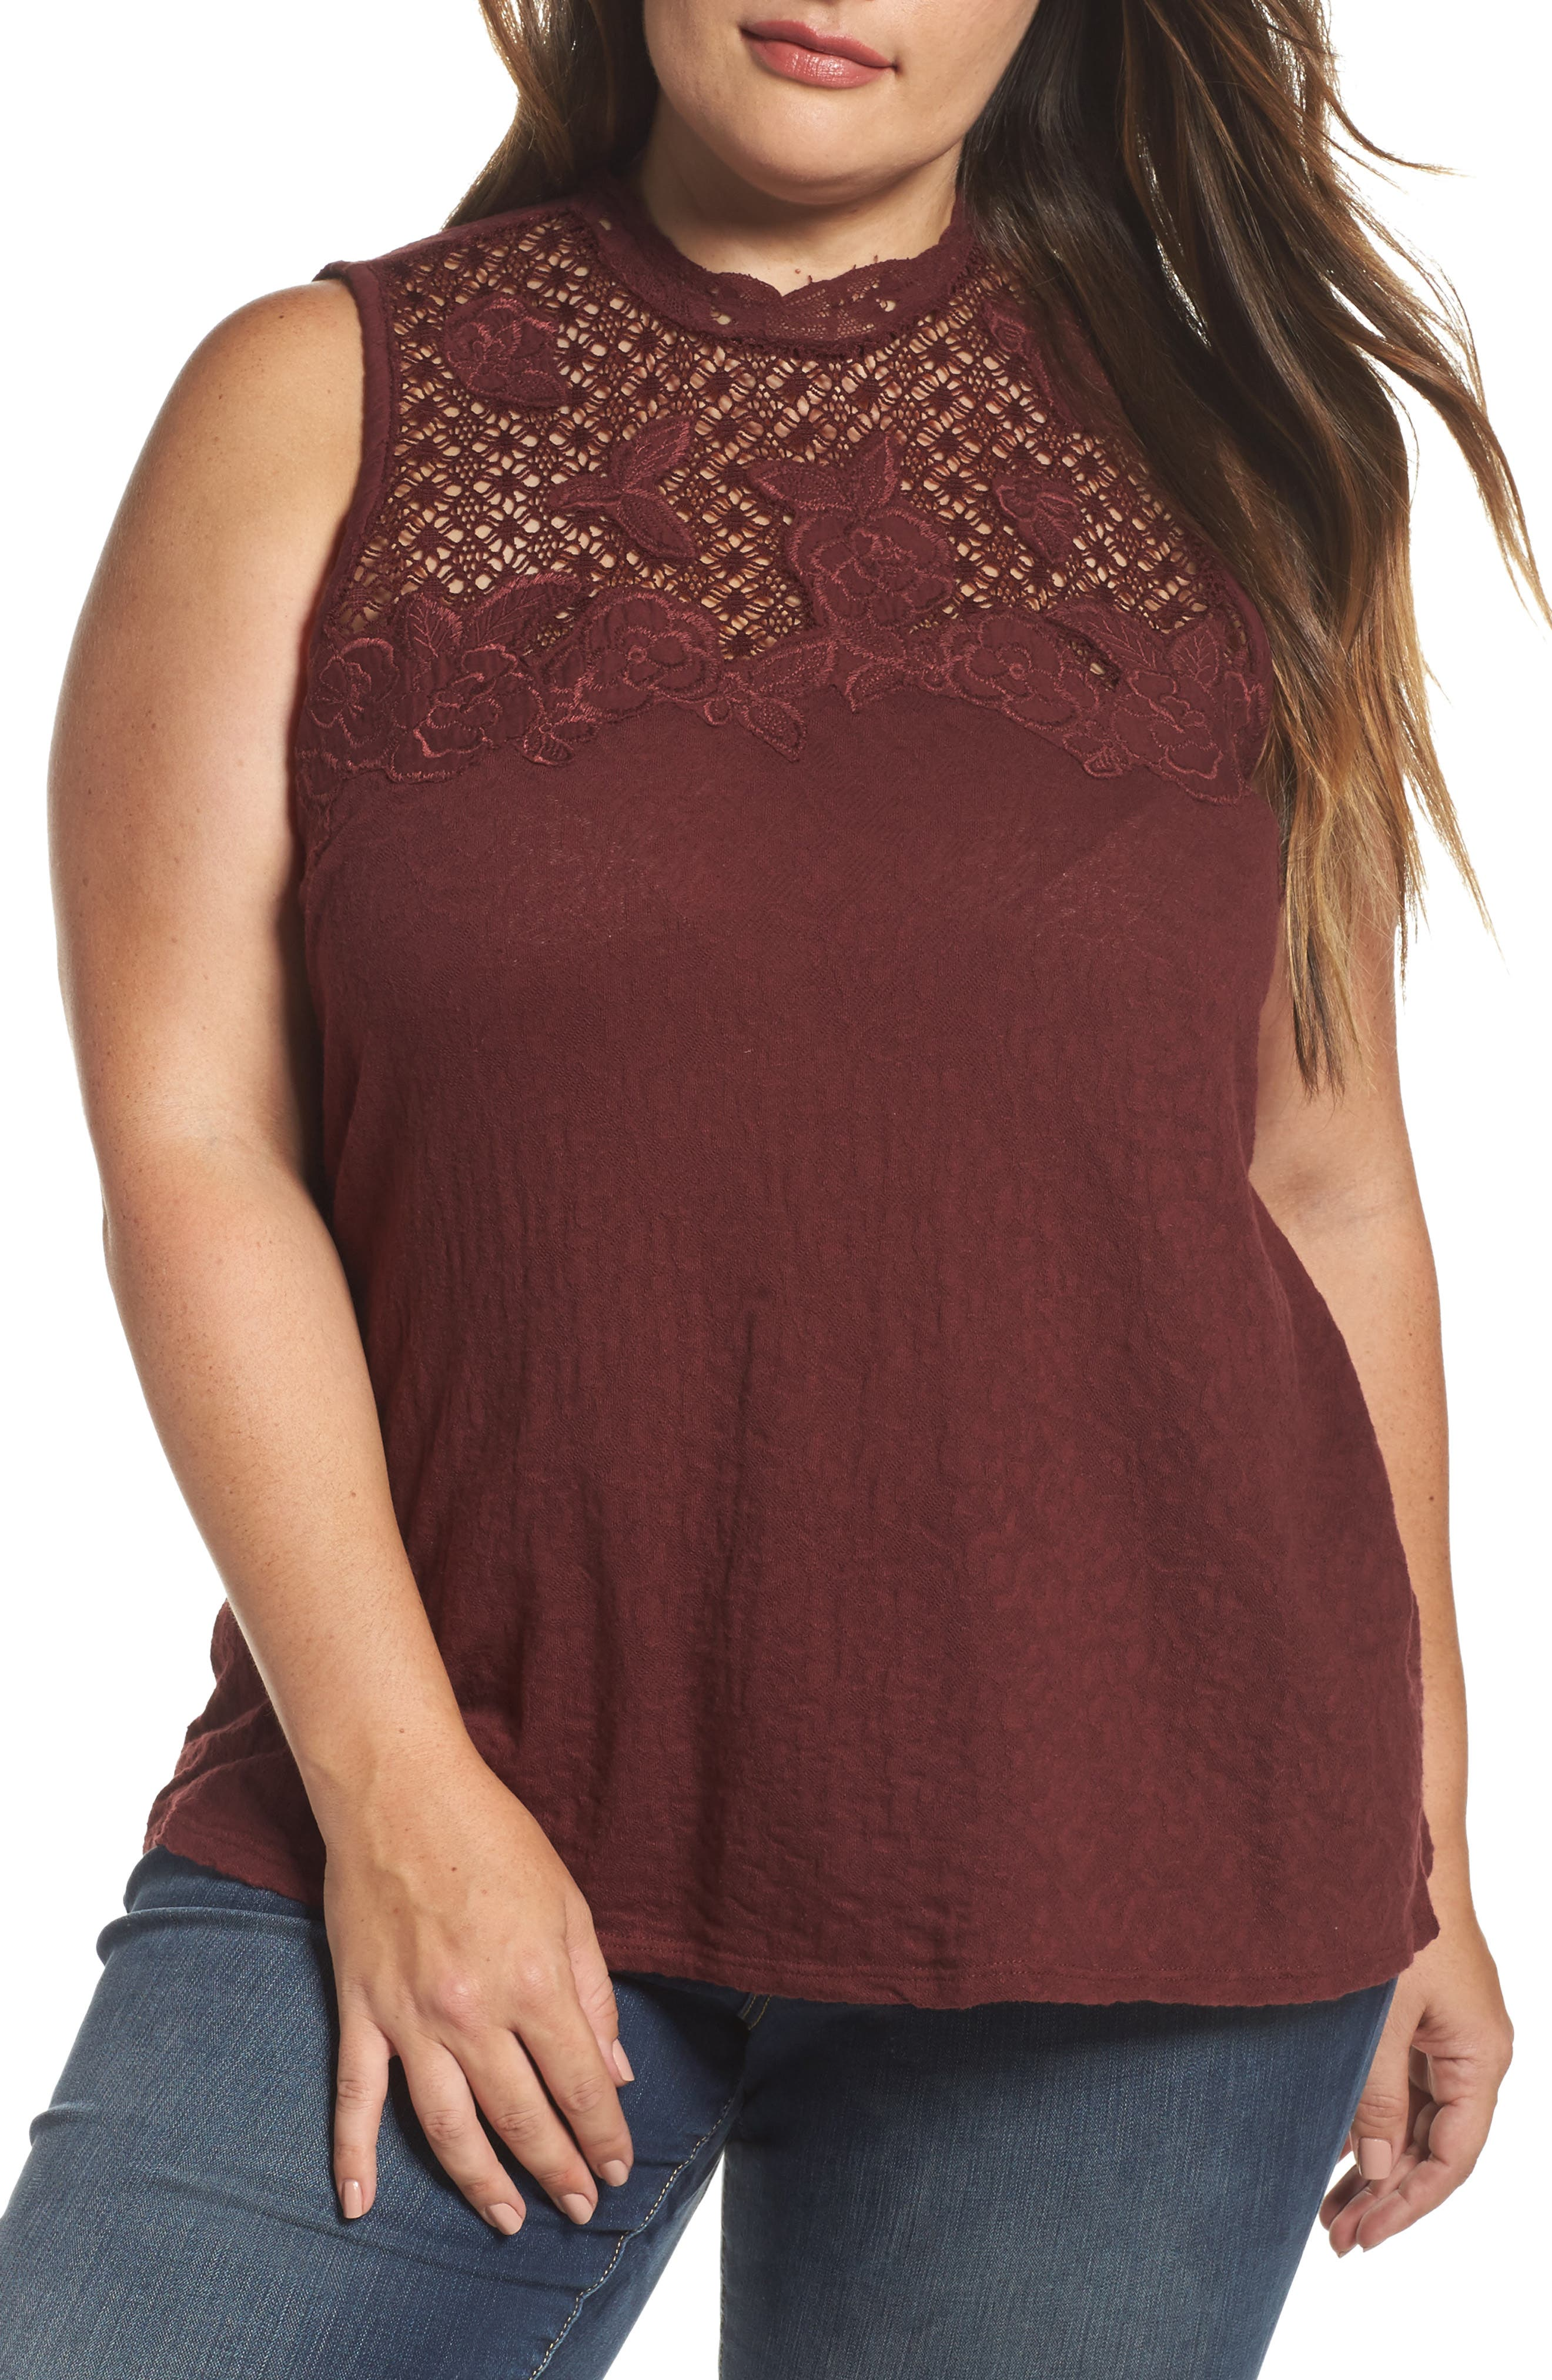 Alternate Image 1 Selected - Lucky Brand Lace Knit Top (Plus Size)